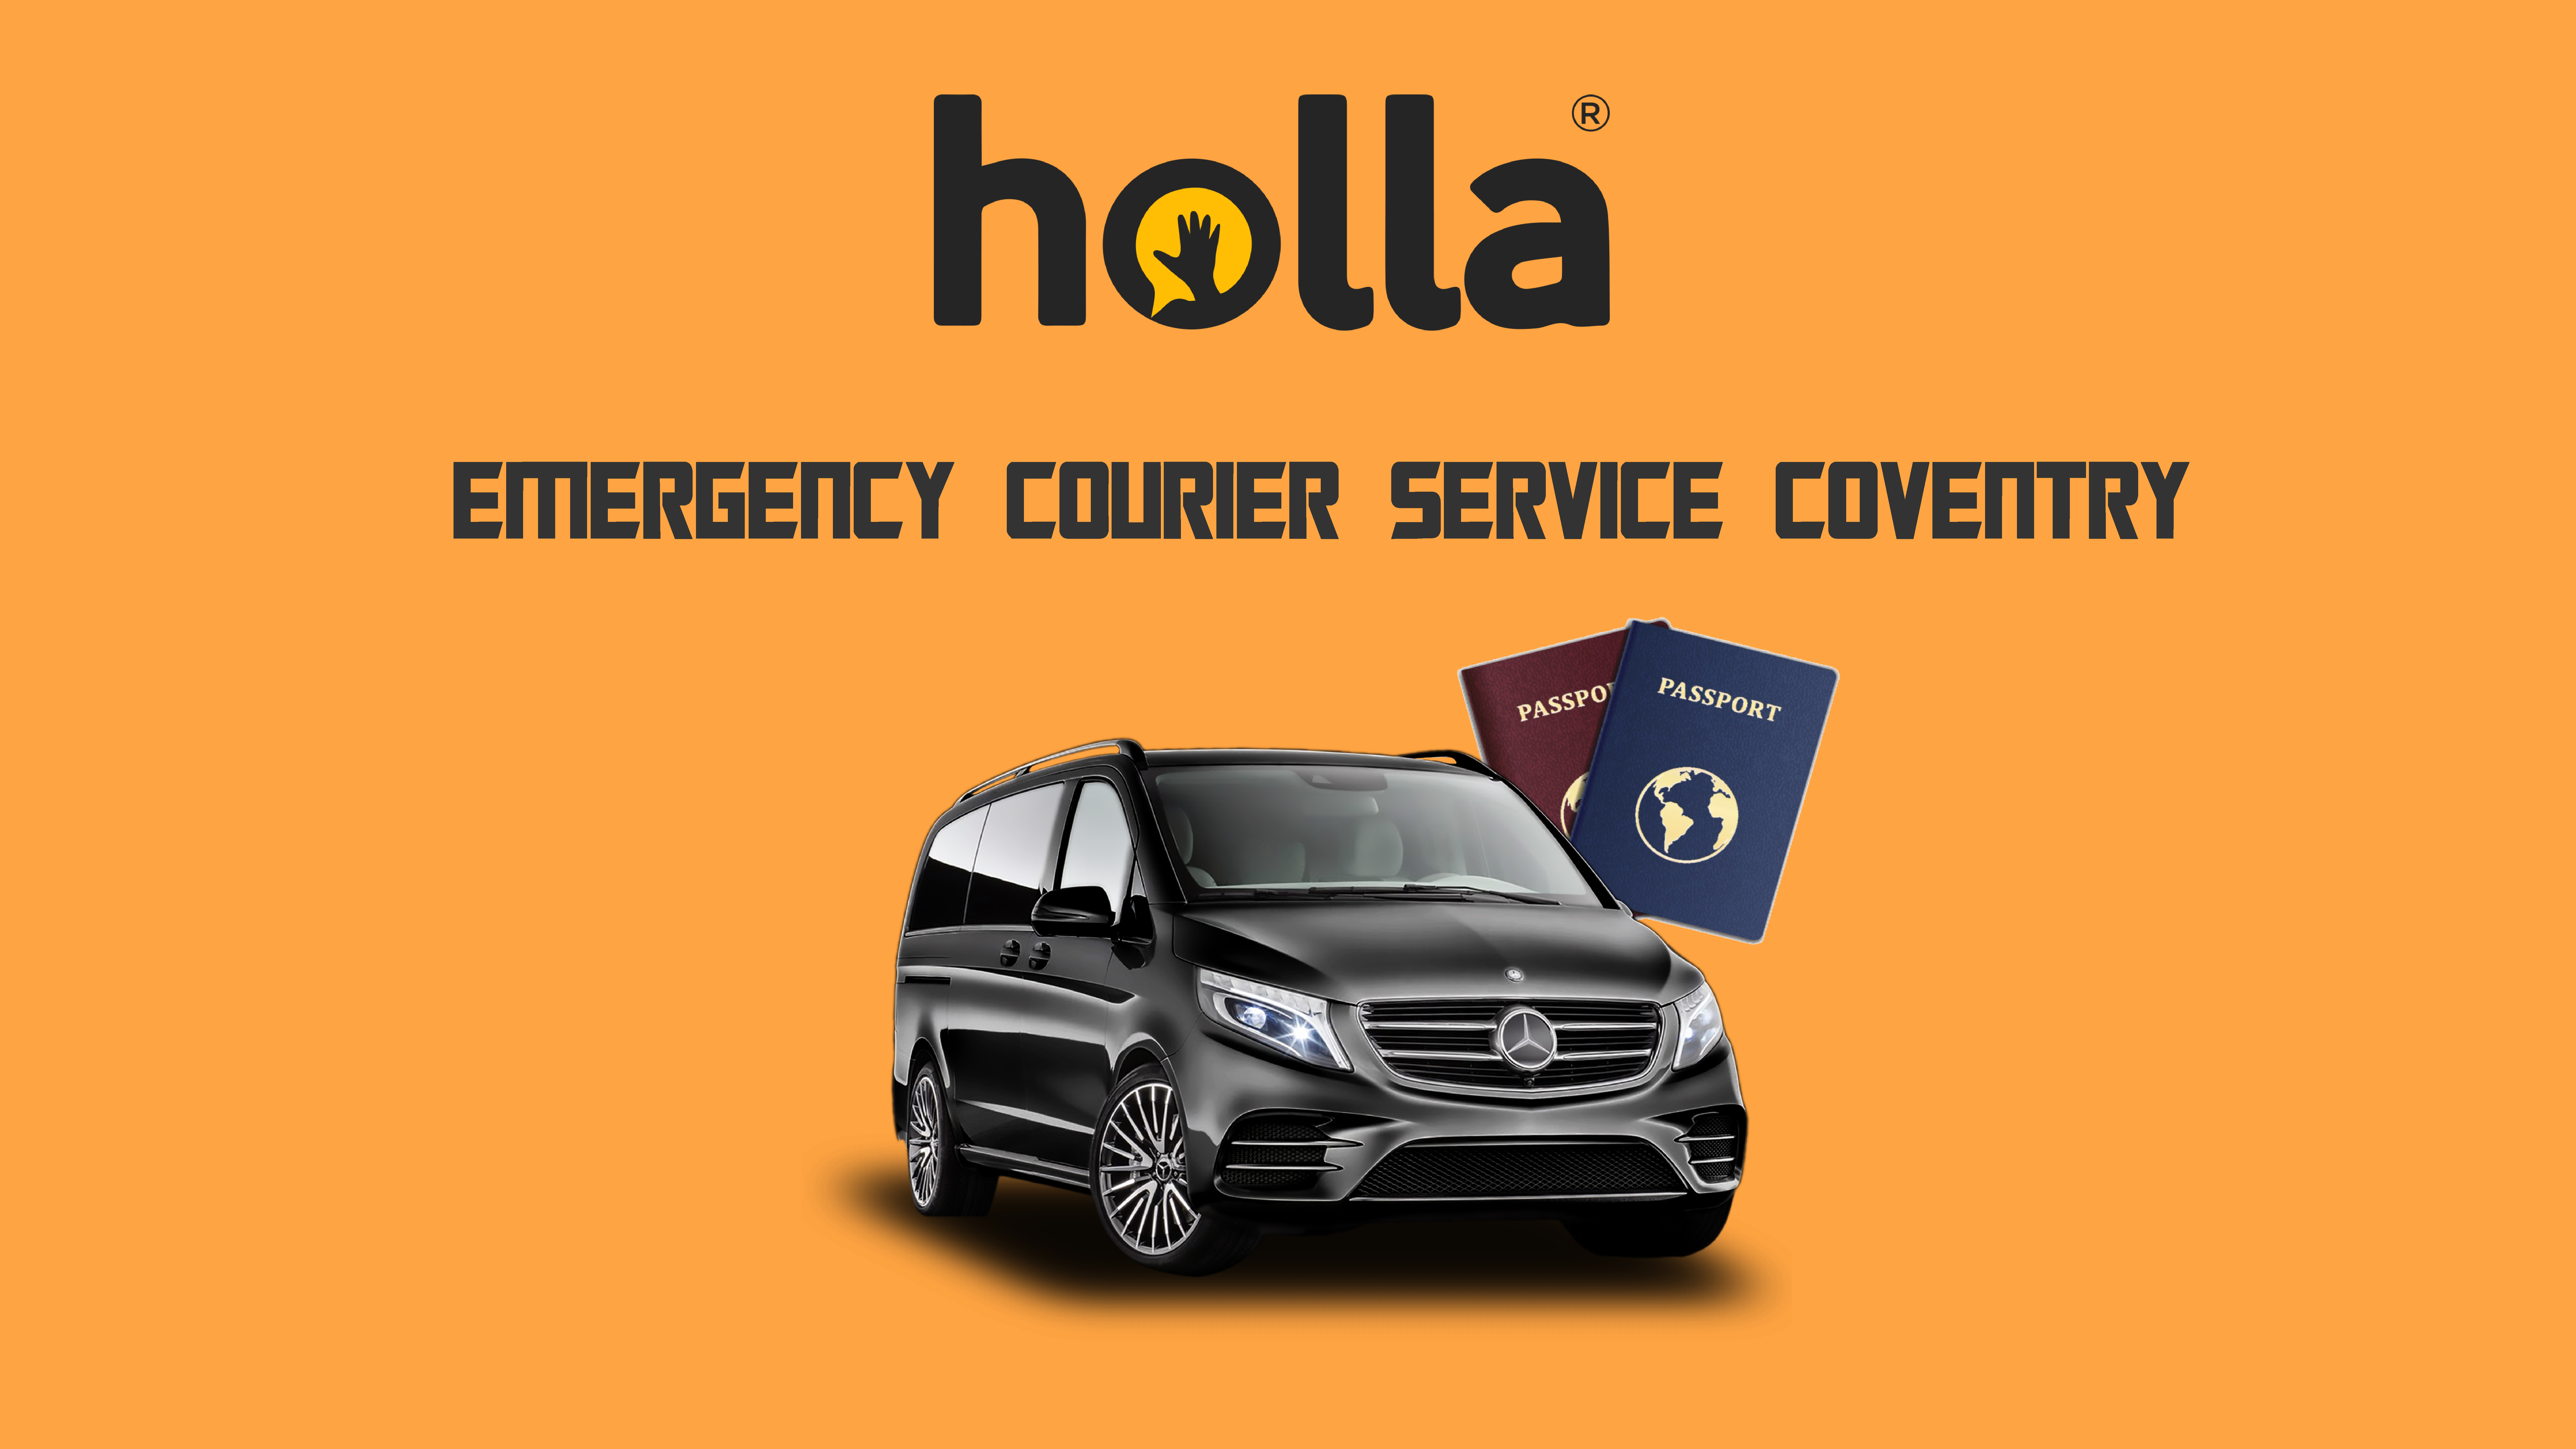 Emergency Courier Service Coventry